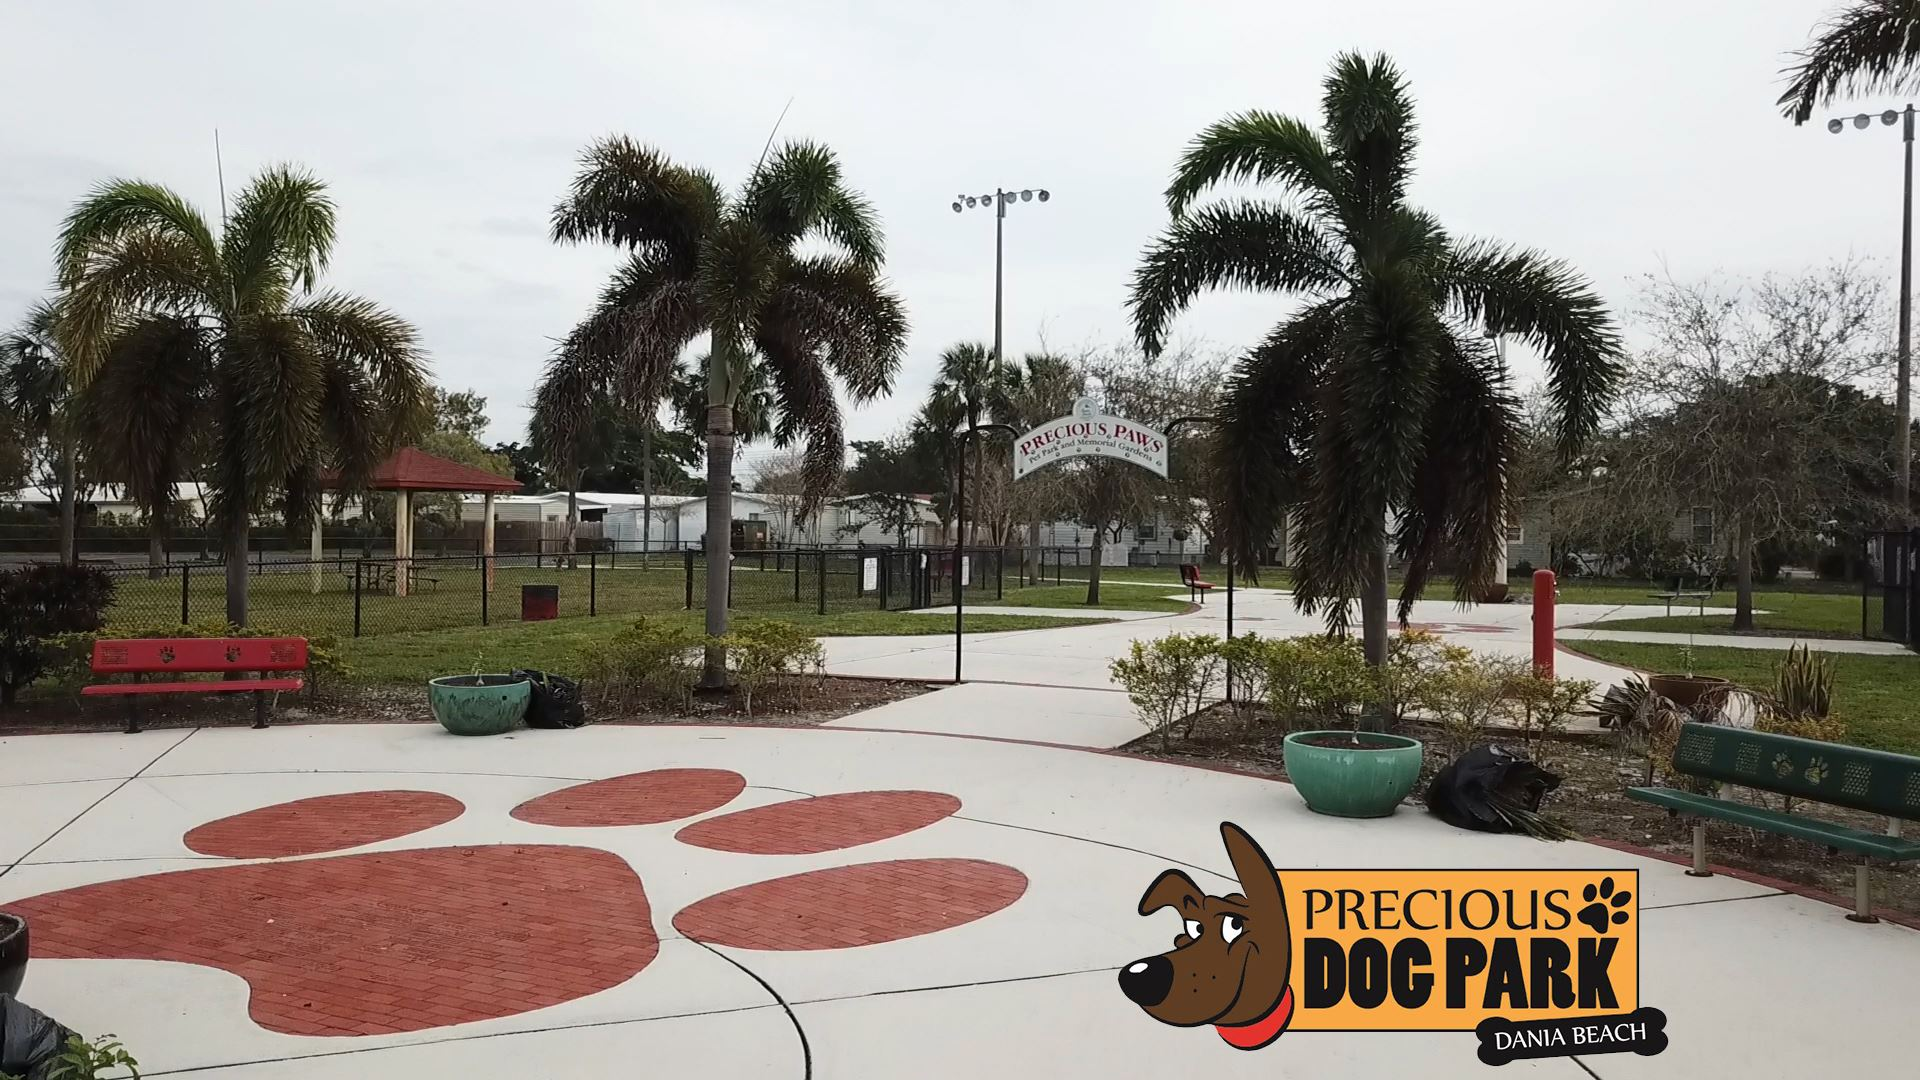 Dania Beach Precious Paws Dog Park - Certified Better Cities for Pets